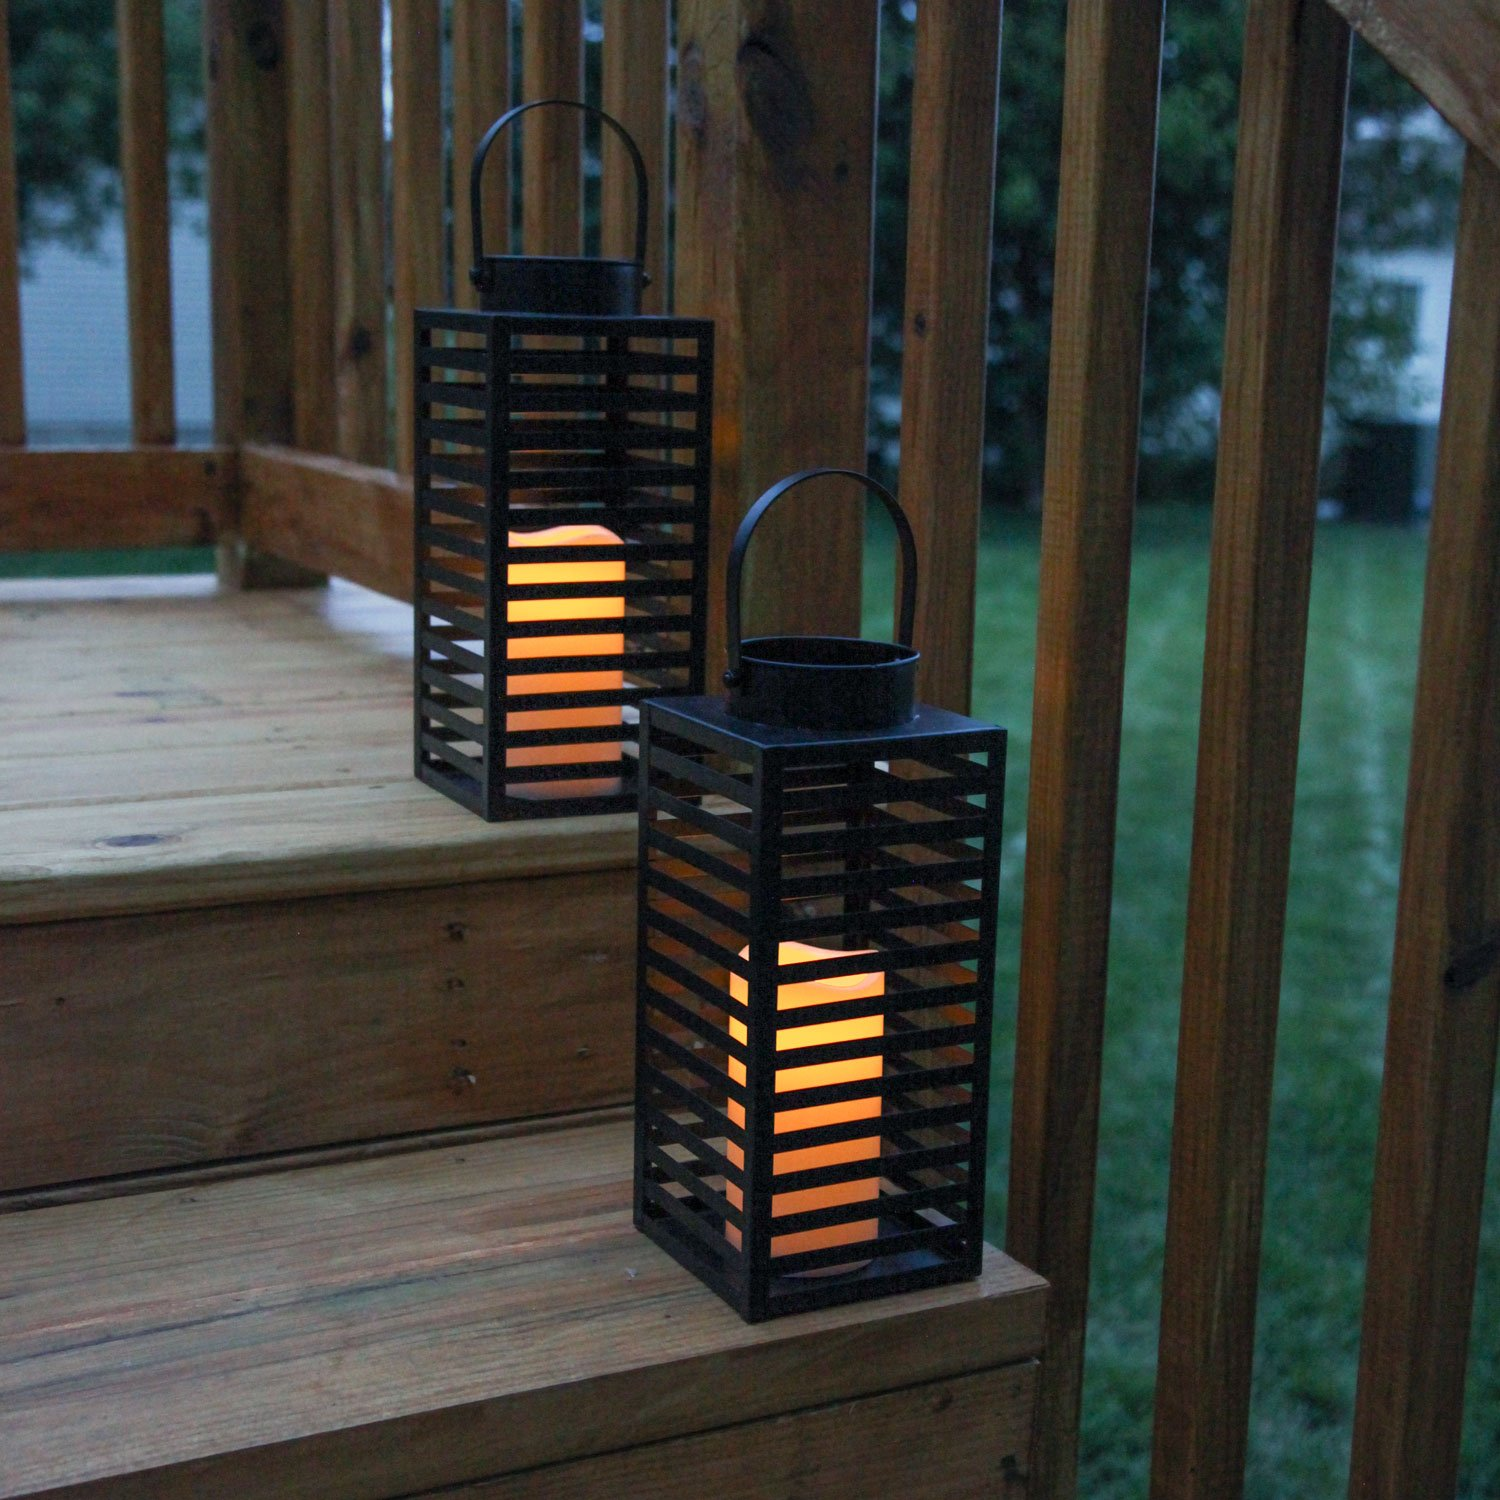 Flameless Black Candle Lanterns with Warm White LEDs, Metal Slat Design, Timer Option and Batteries Included - Set of 2 by LampLust